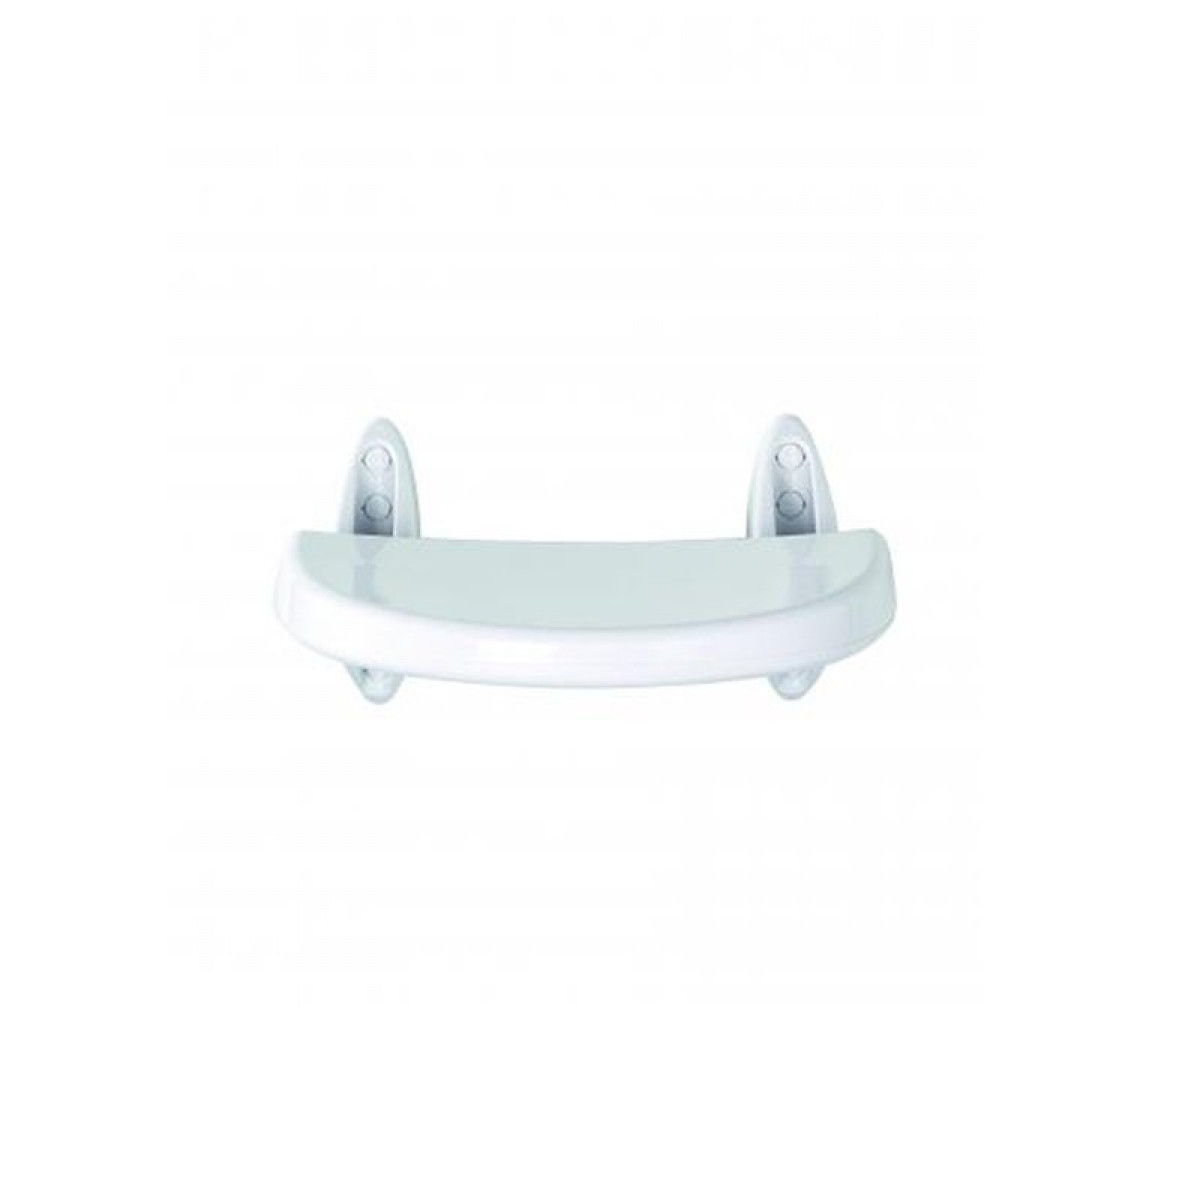 Croydex White Fold Away Shower Seat | AP120022 -